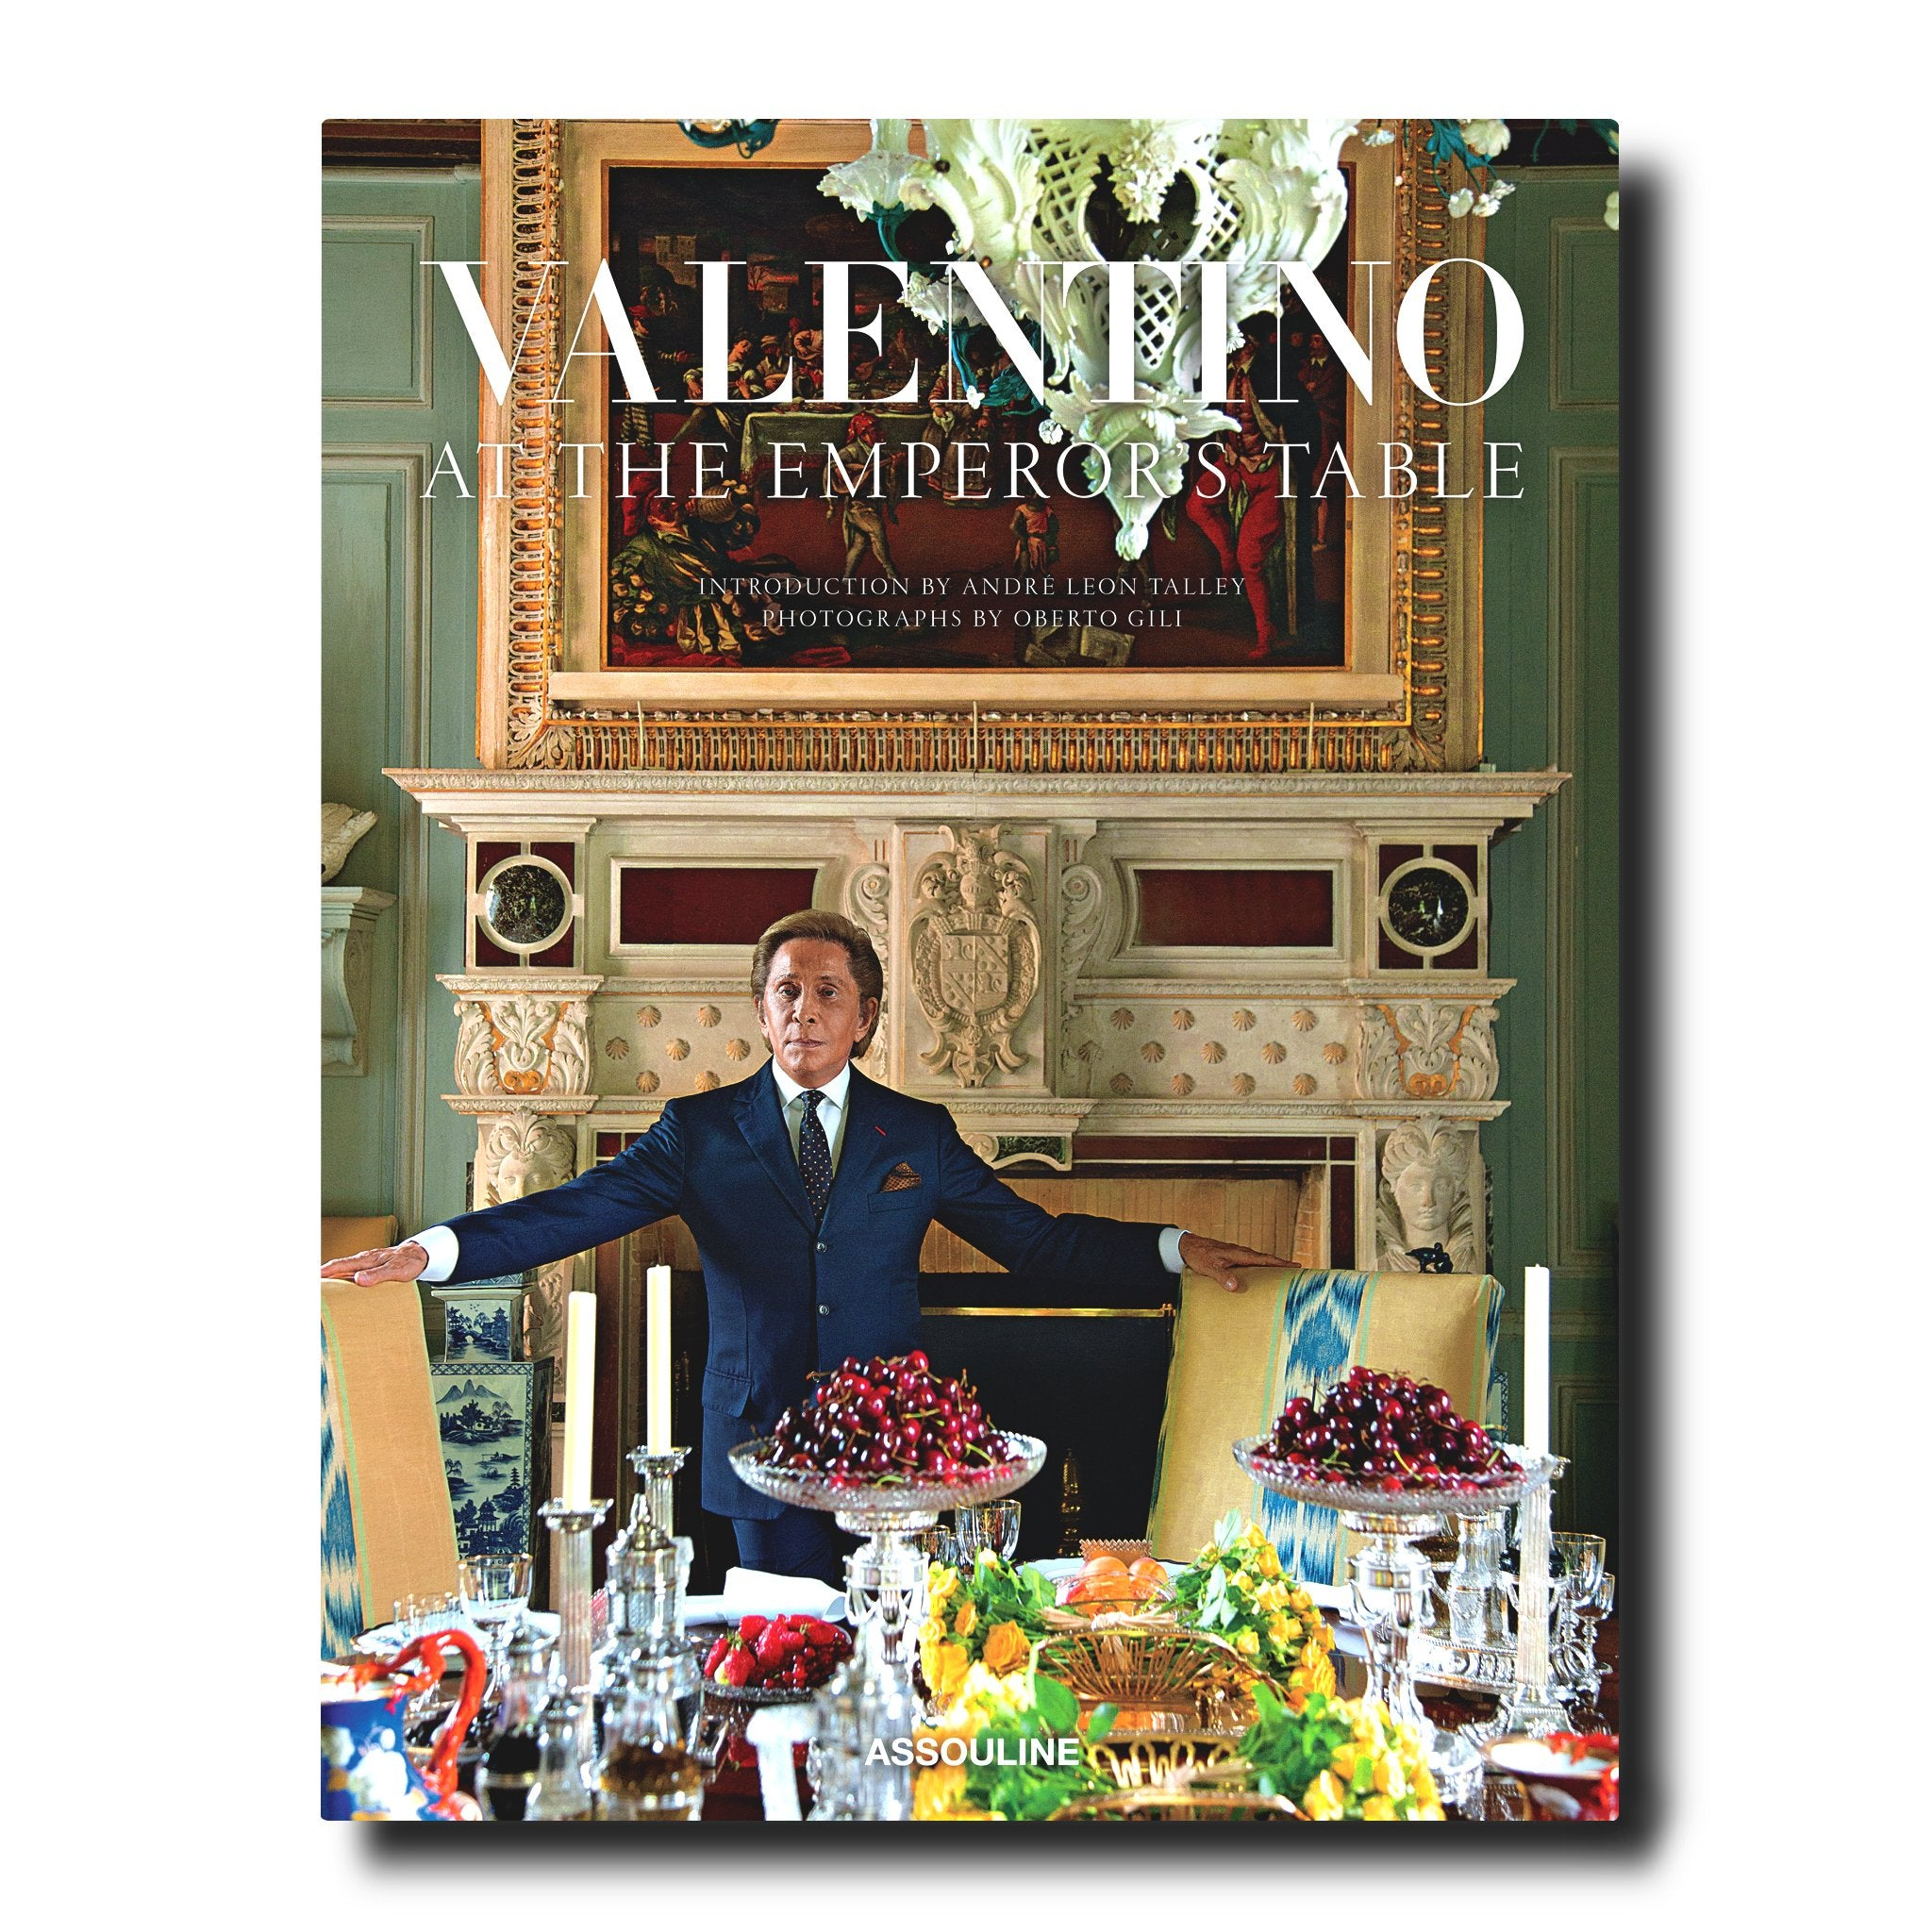 Assouline Books Valentino: At the Emperor's Table